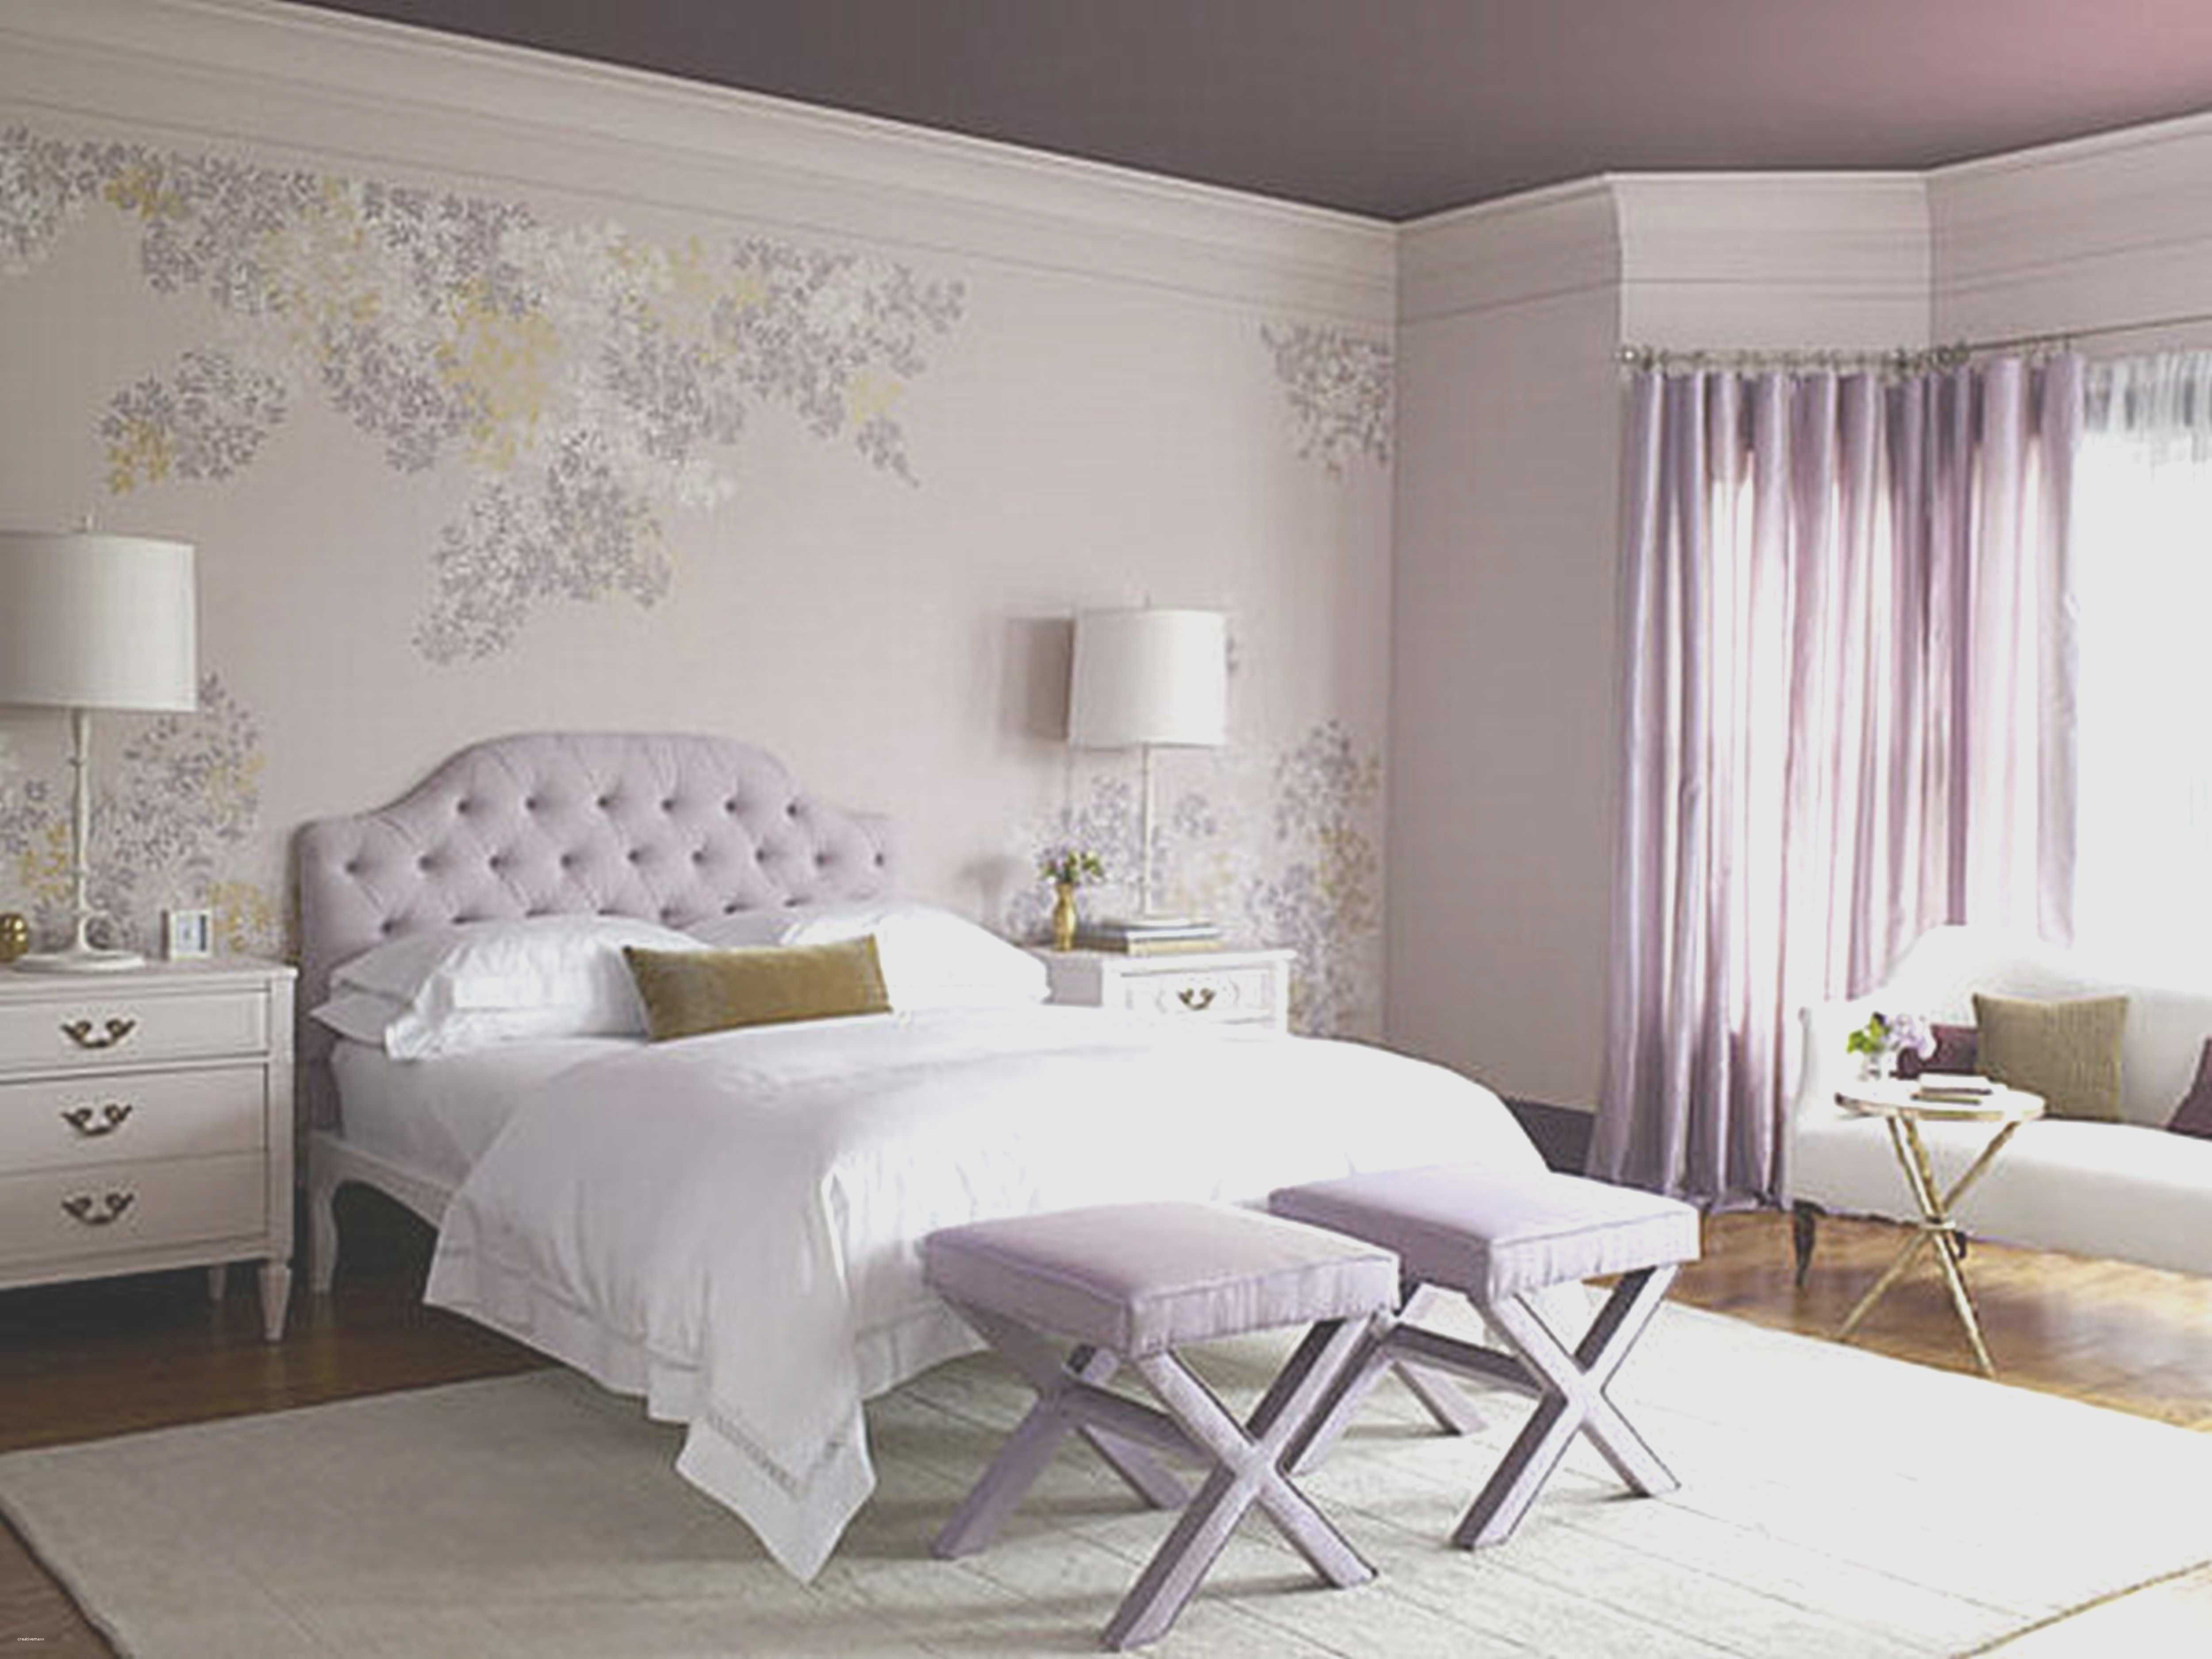 Bedroom Ideas for Teenage Girls Pinterest - Best Of ... on Classy Teenage Room Decor  id=85834